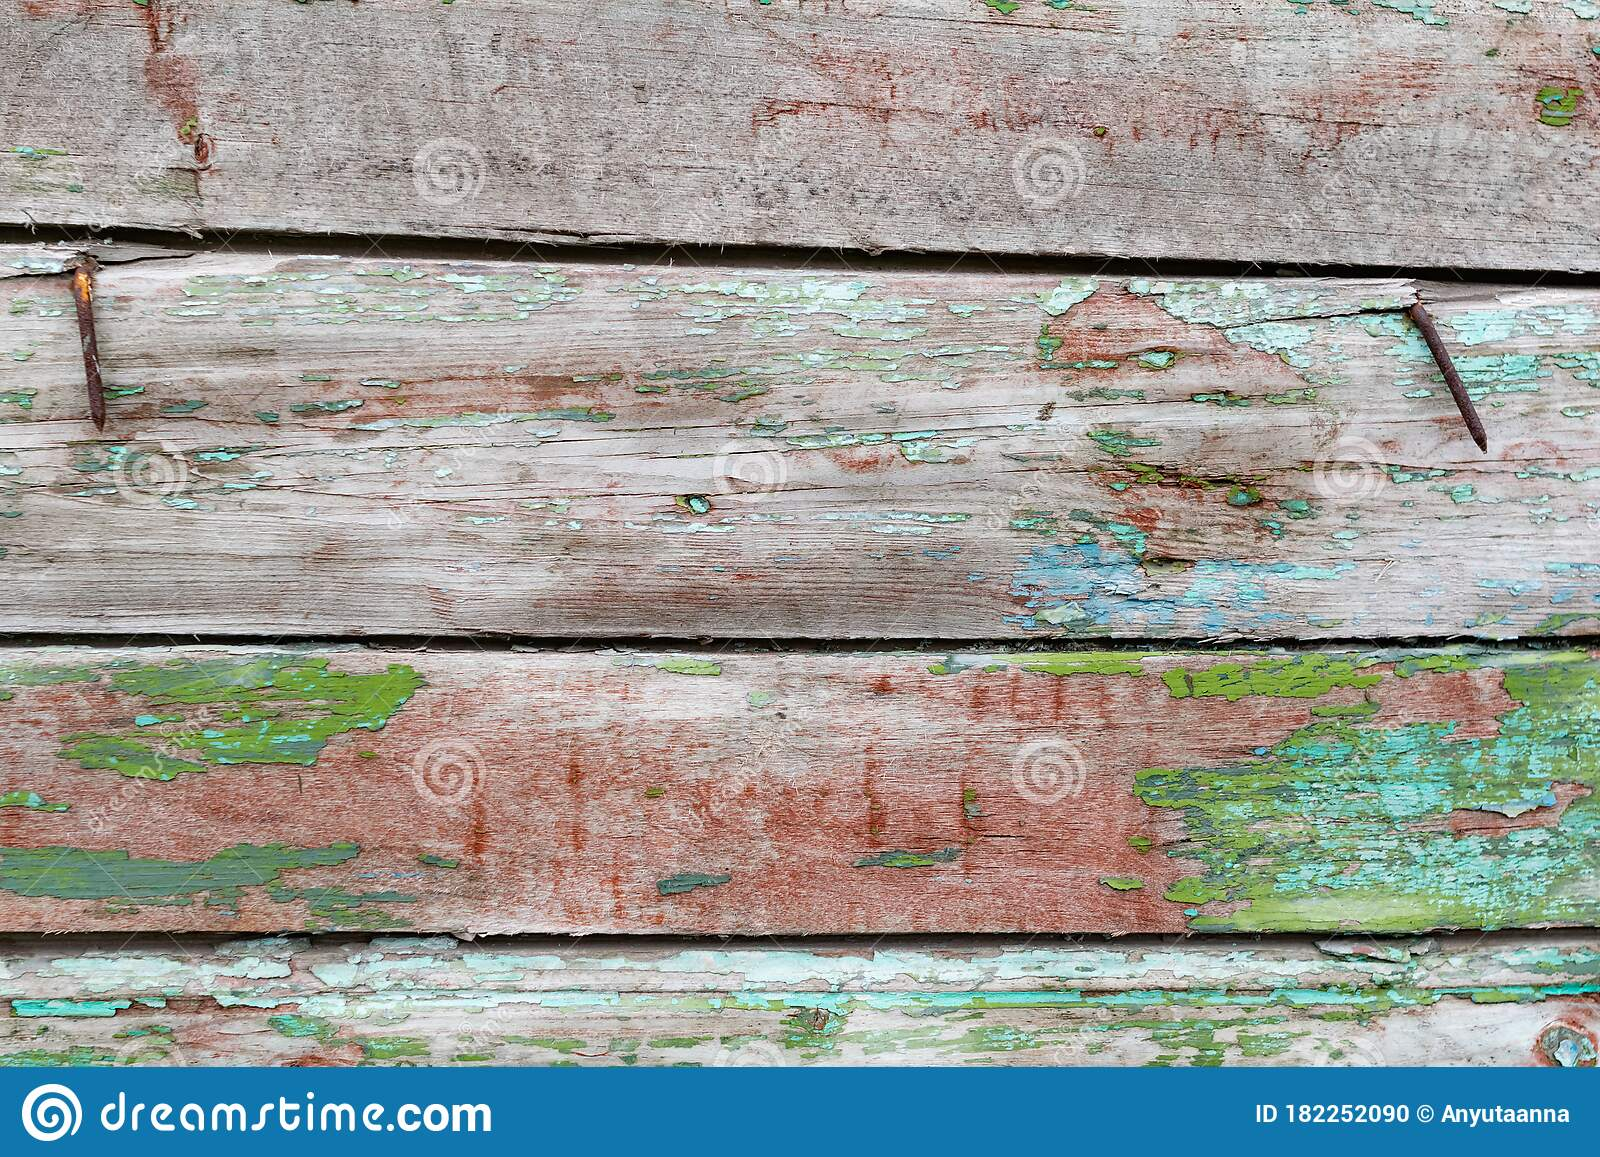 Old Wooden Background With Peeling Paint Vintage Boards With Blue And Green Coating Aquamarine Shades On Brown Stock Photo Image Of Rough Long 182252090